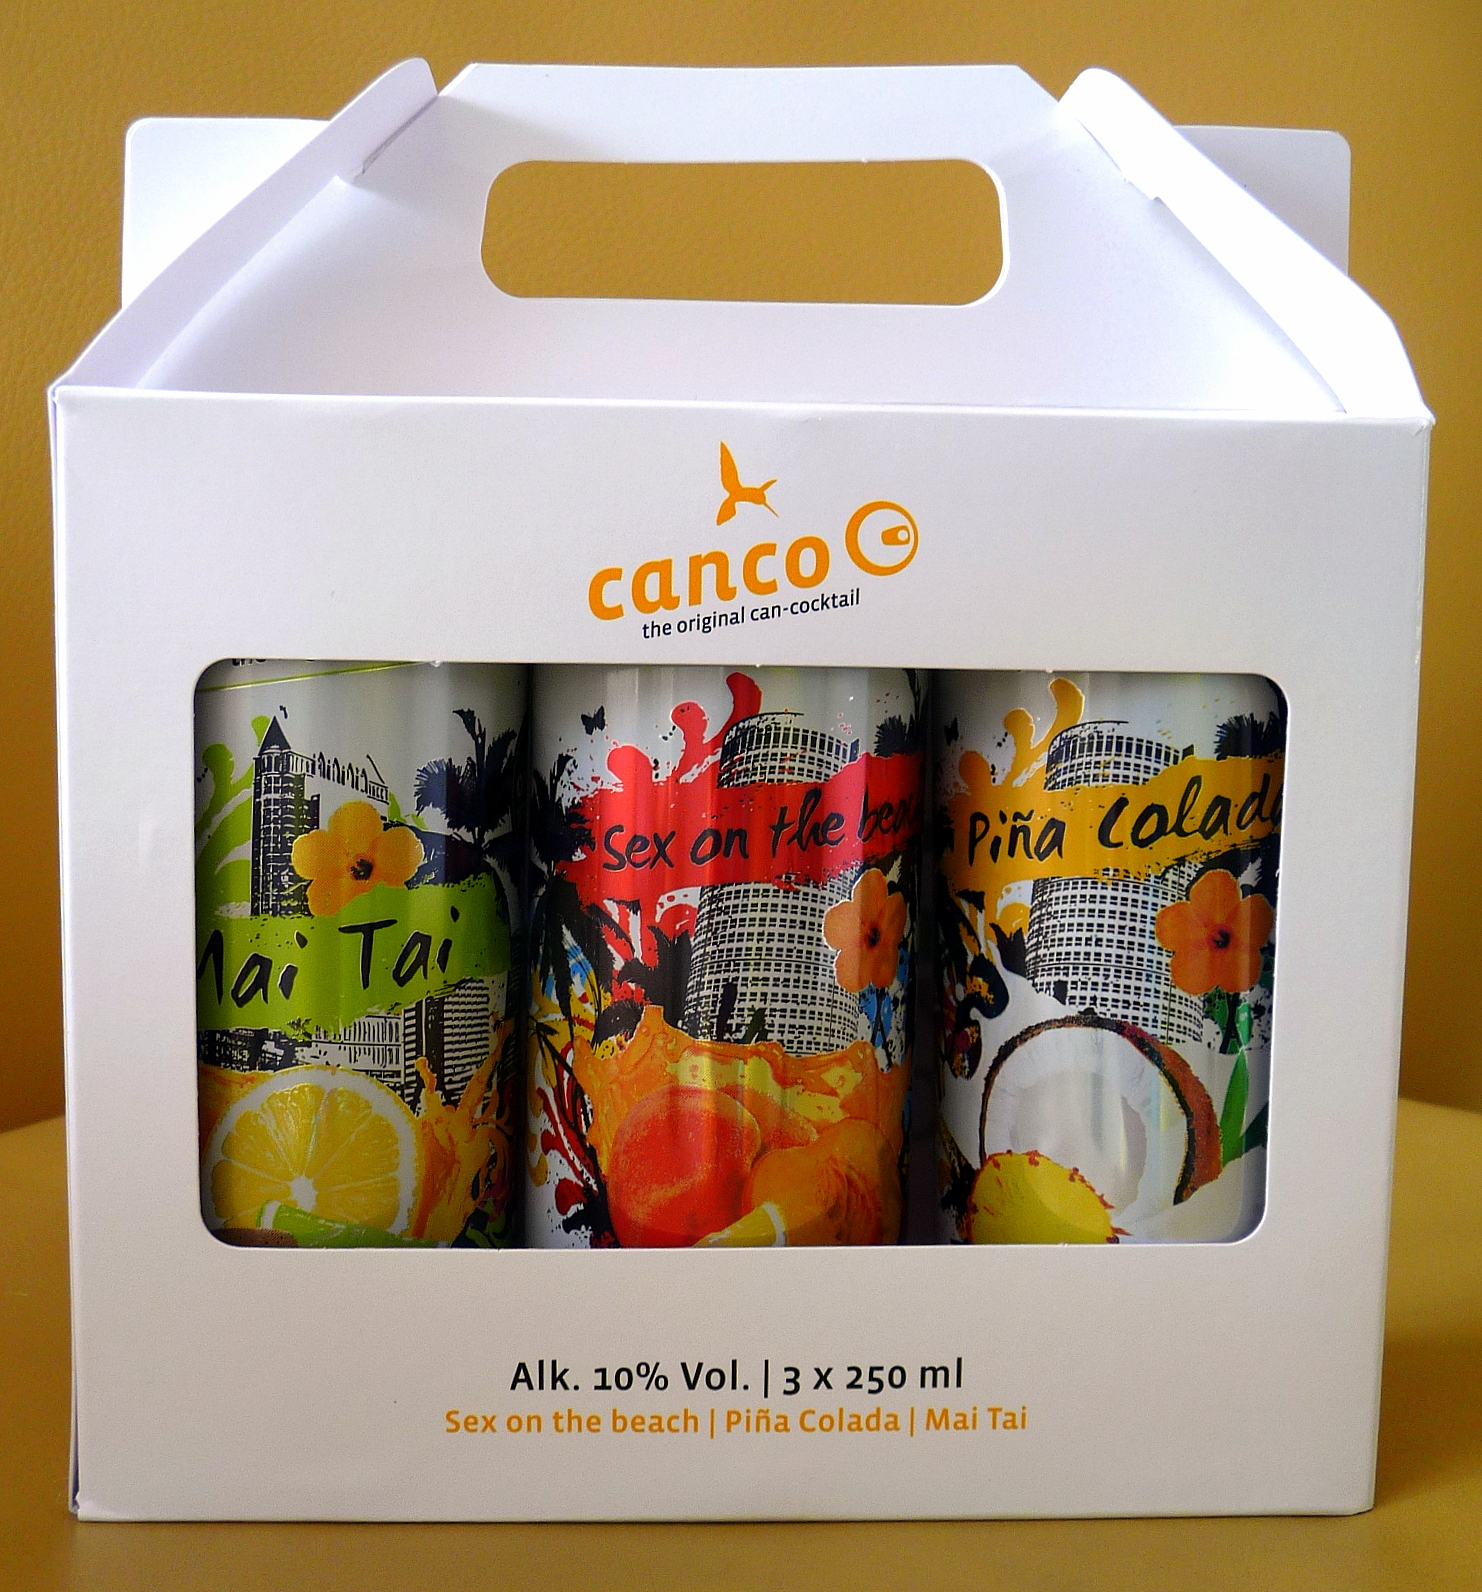 canco - the original can-cocktail